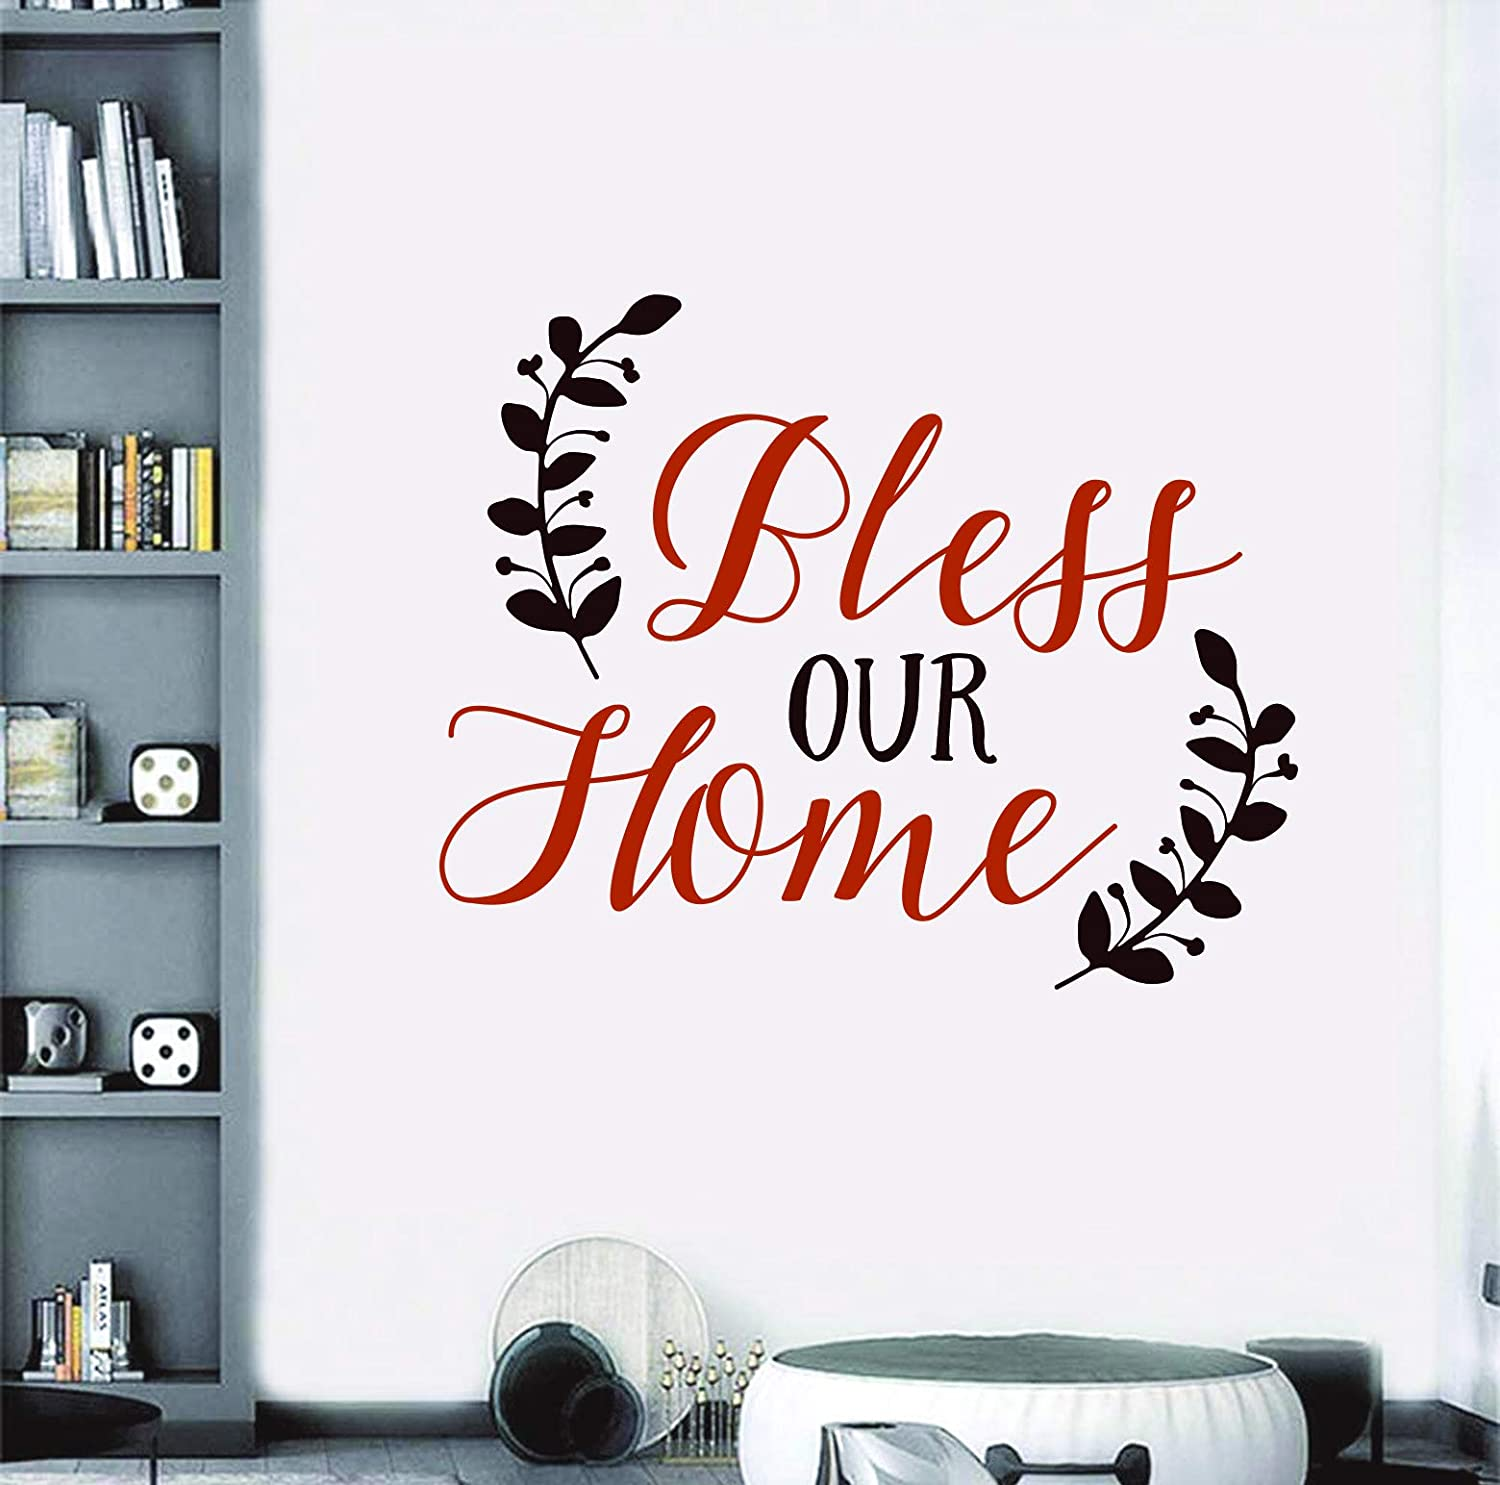 Bless Our Home - Inspirational Quote Motivational XL Decal Wall Removable Art DIY Sticker Peel and Stick Bless Our Home